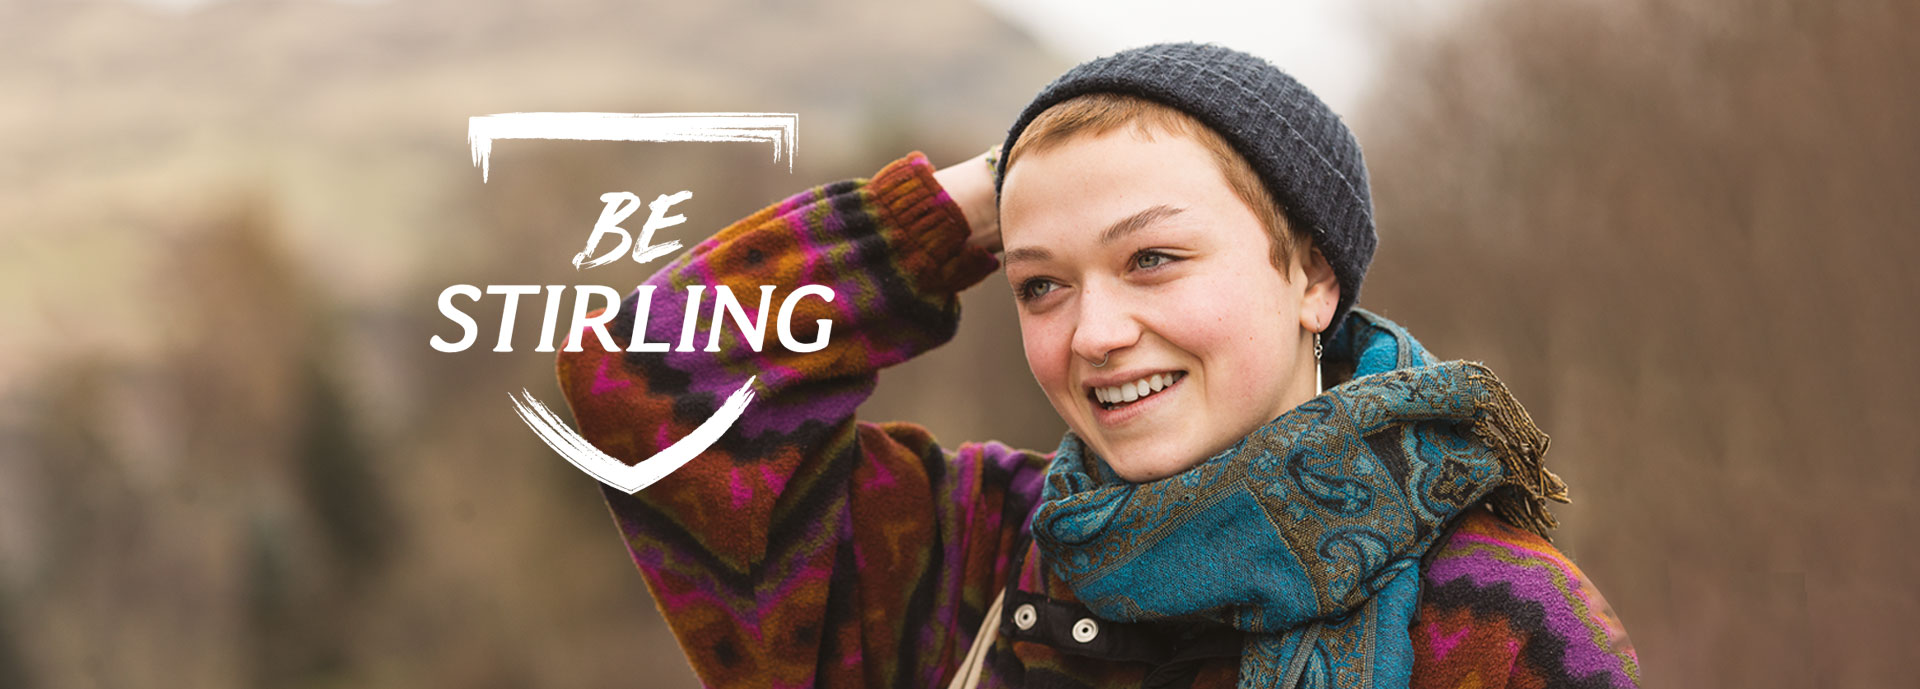 Be Stirling header image